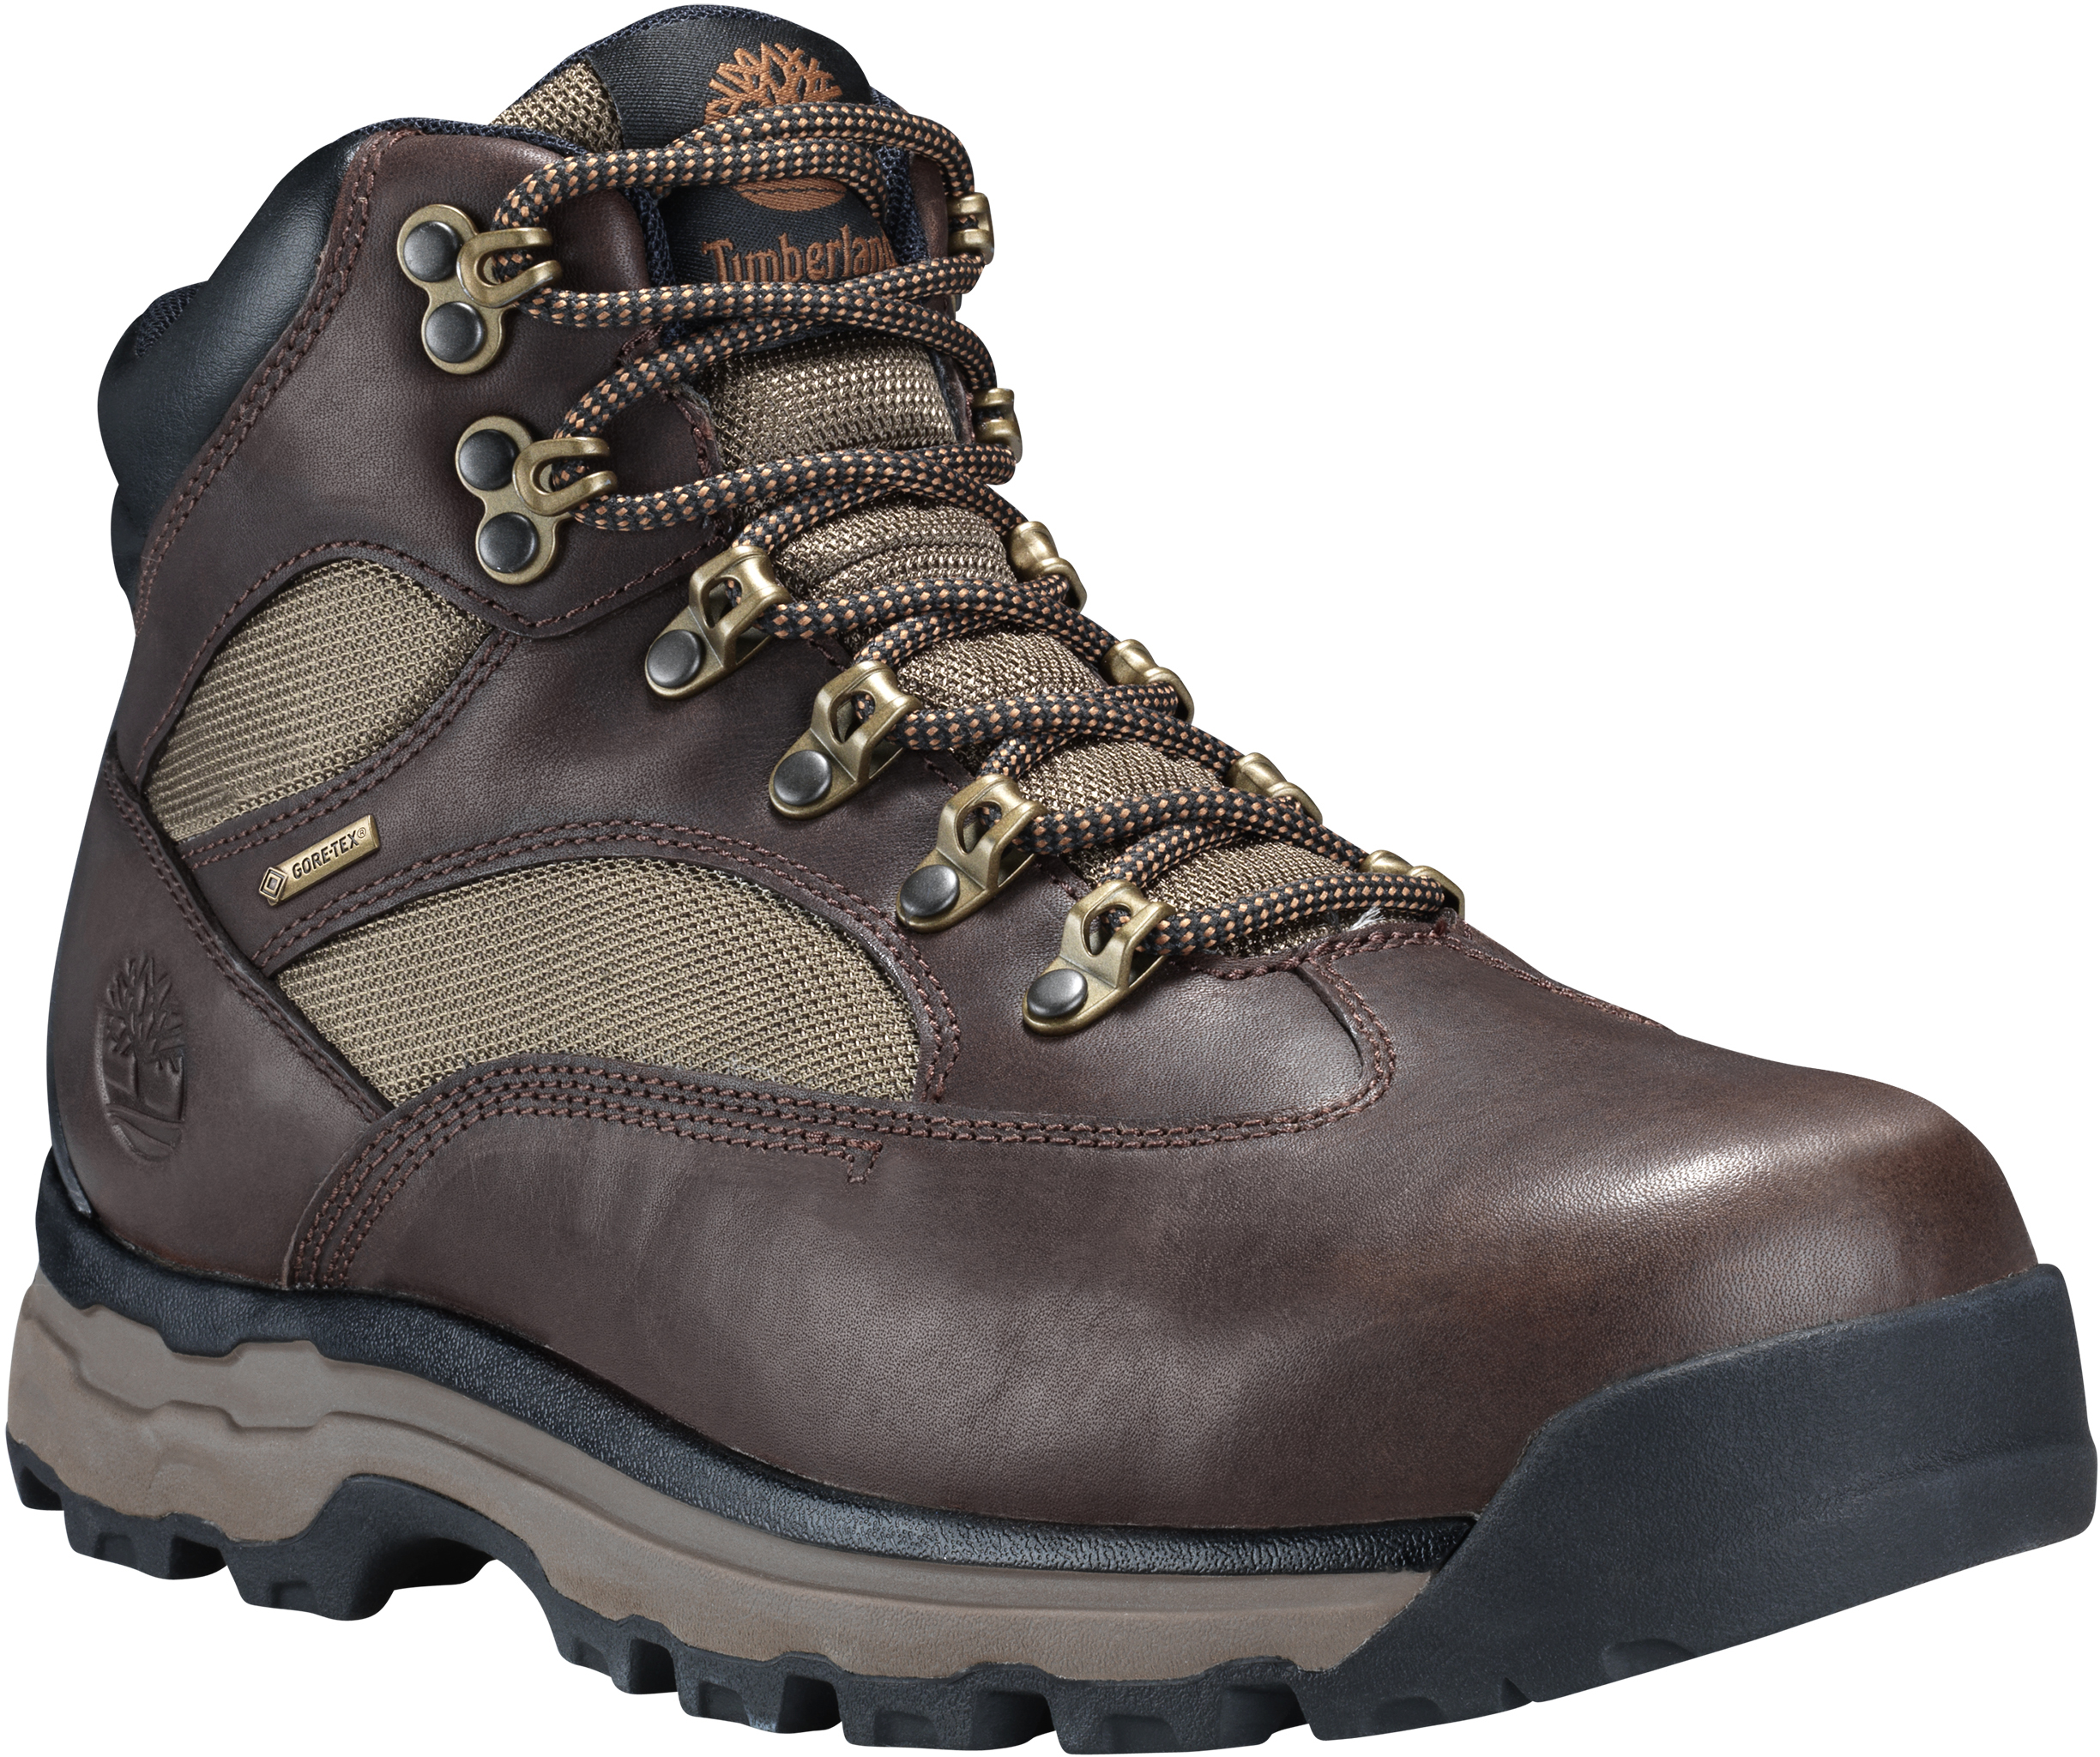 410edcf05f4 Timberland Men's Chocorua Trail 2 Mid GTX TB0A1HKQA66 Dark Brown-Green